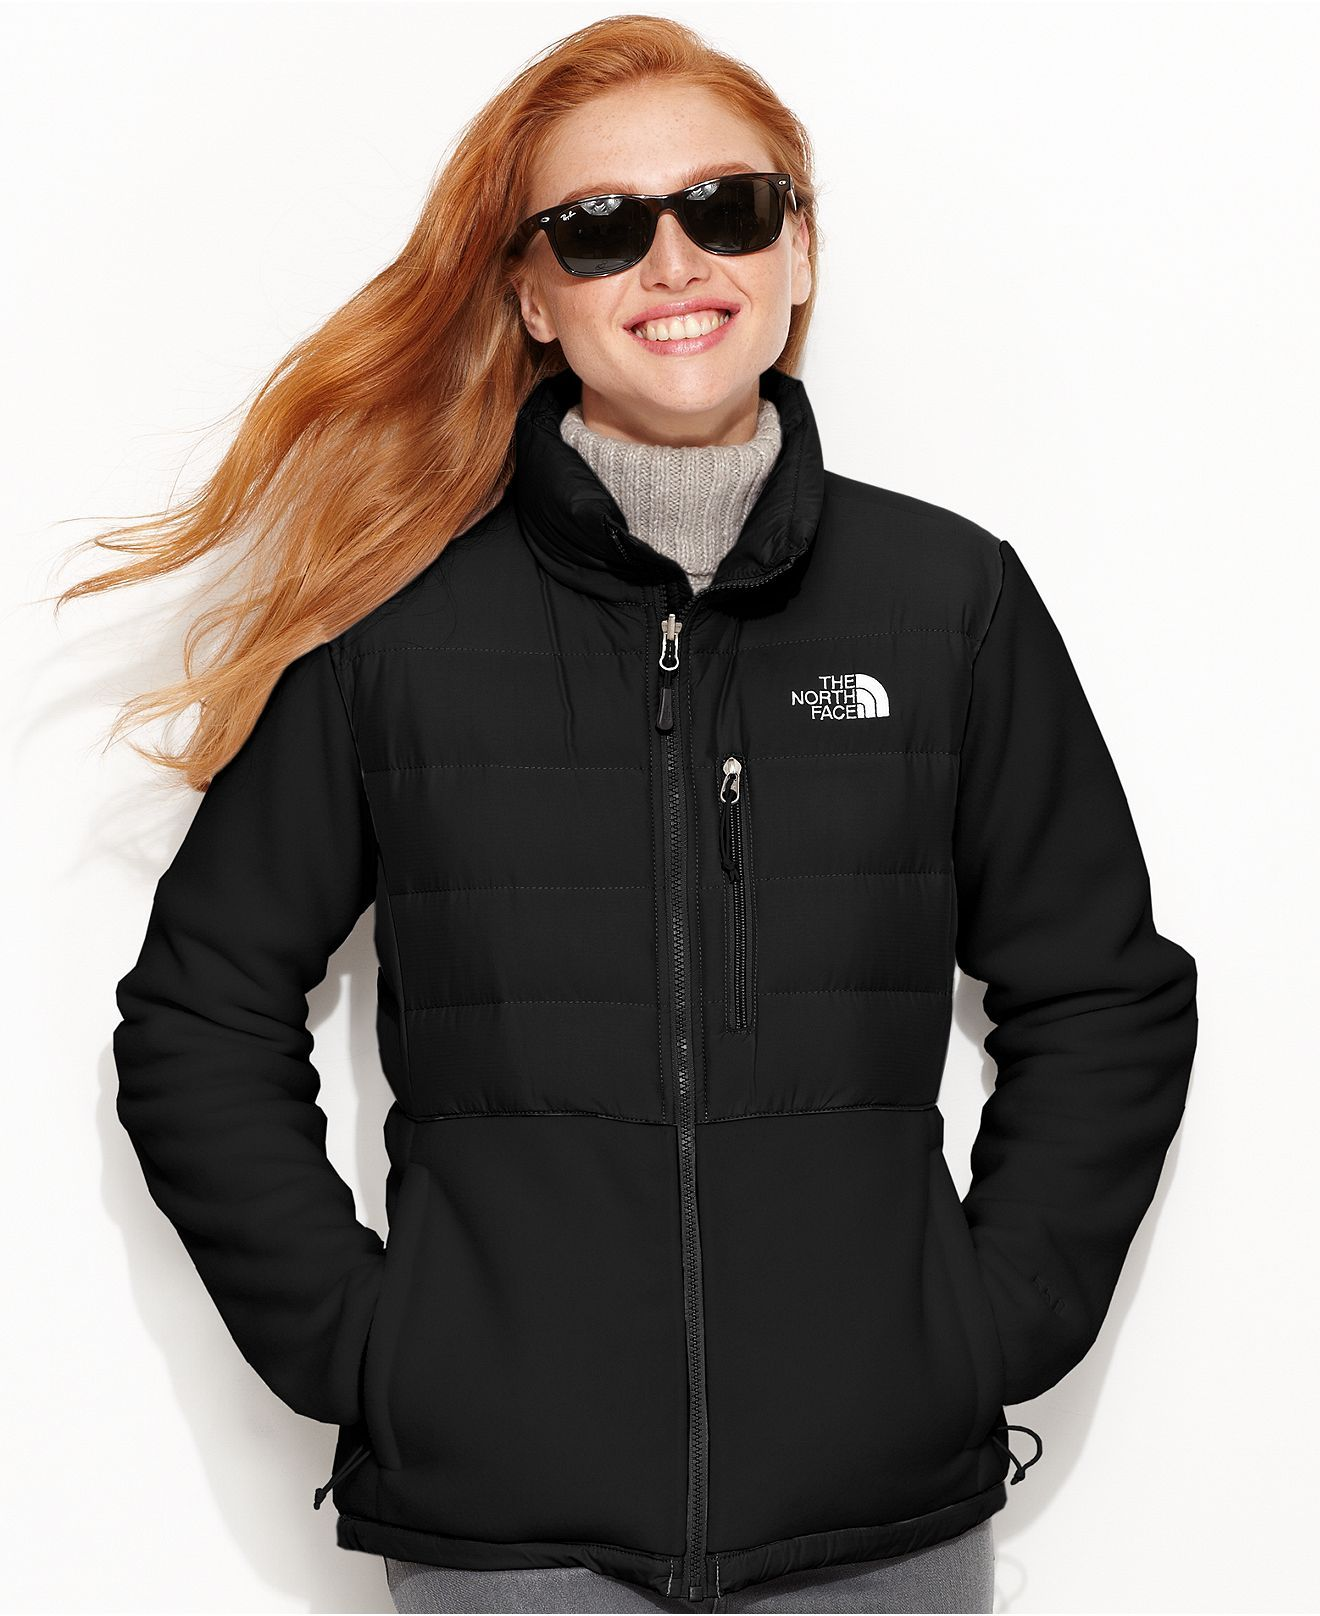 In The Pacific Northwest We Wear Our North Face Jackets Year Round North Face Jacket North Face Nuptse Jacket Jackets [ 1616 x 1320 Pixel ]